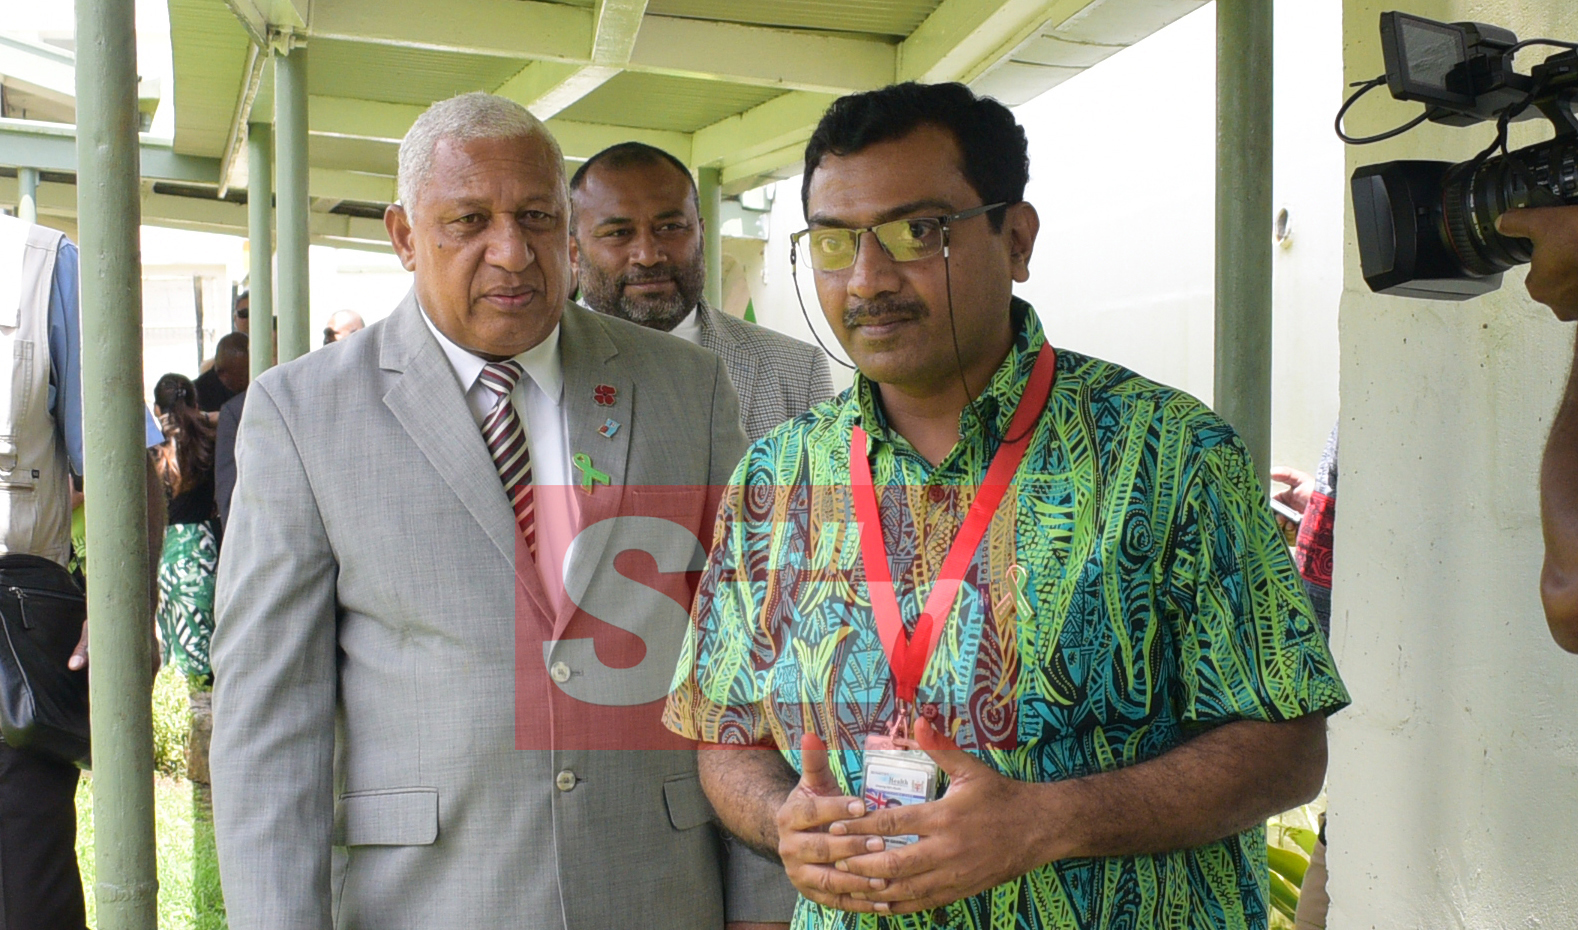 Prime Minister Voreqe Bainimarama and Minister for Health Dr. Iferemi Waqainabete with Dr. Kiran Gaikwat of St. Giles after opening the Alcohol and Drug unit (AOD Unit) at the hospital on November 6, 2019. Photo: Ronald Kumar.